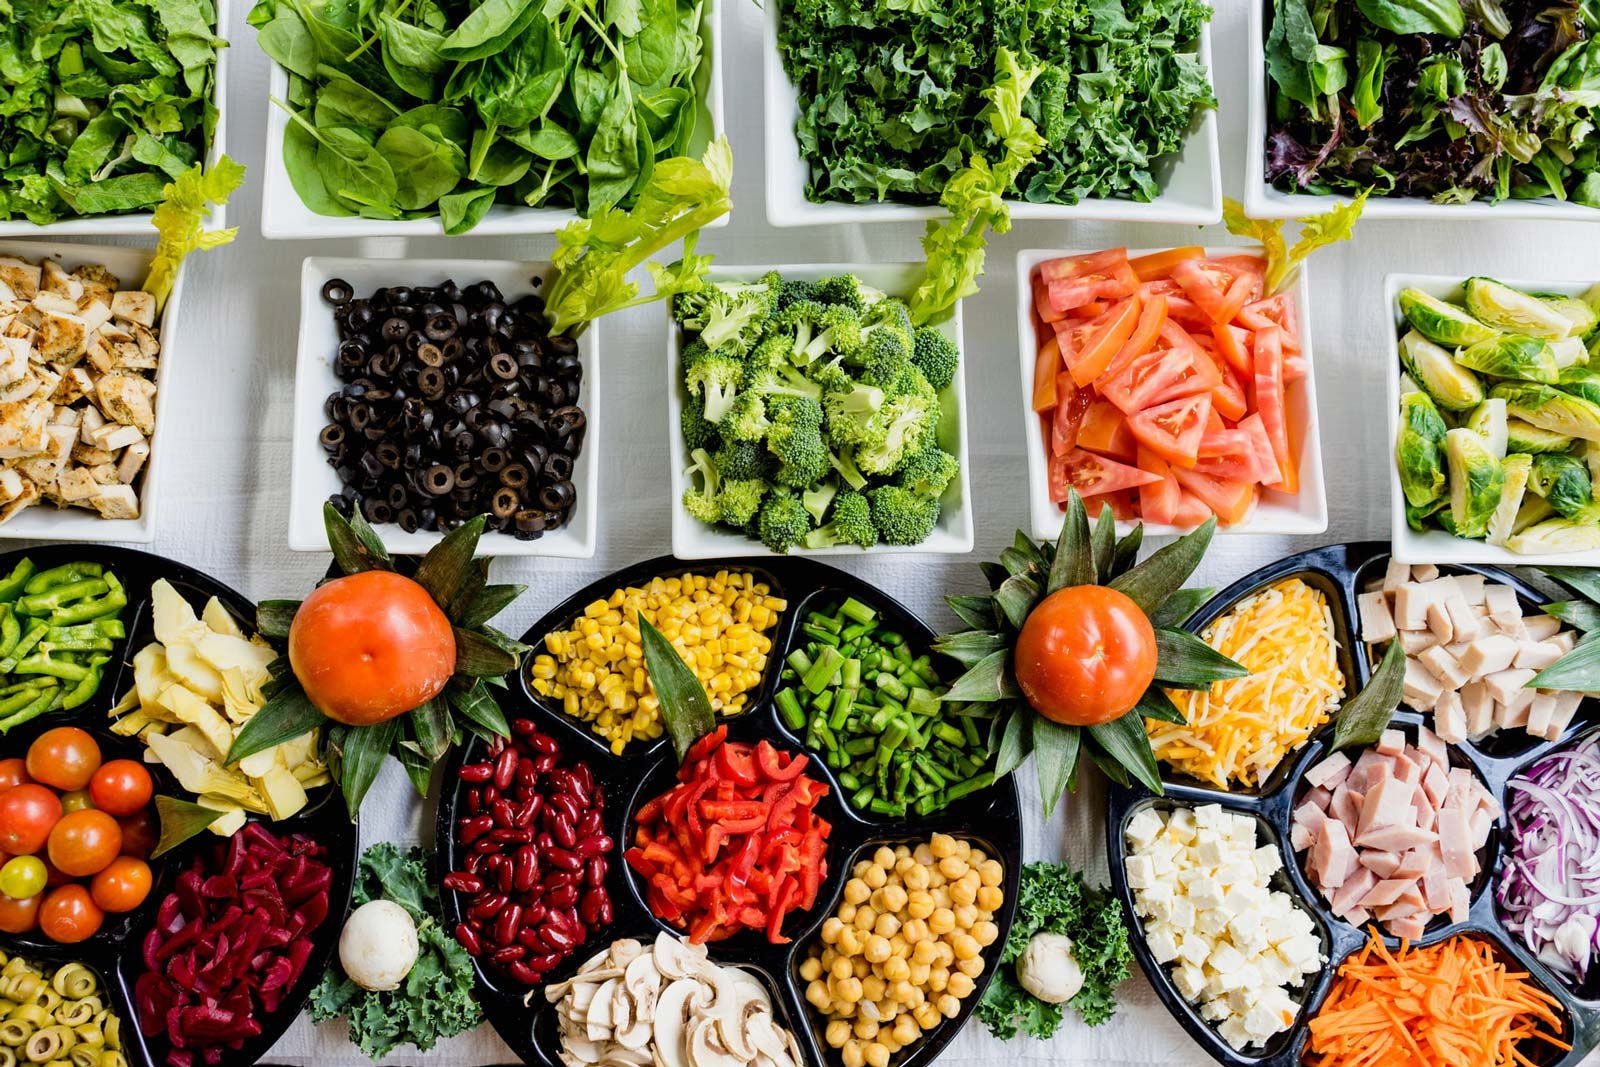 Image of a table full of fruits and vegetables that are good for nutrition